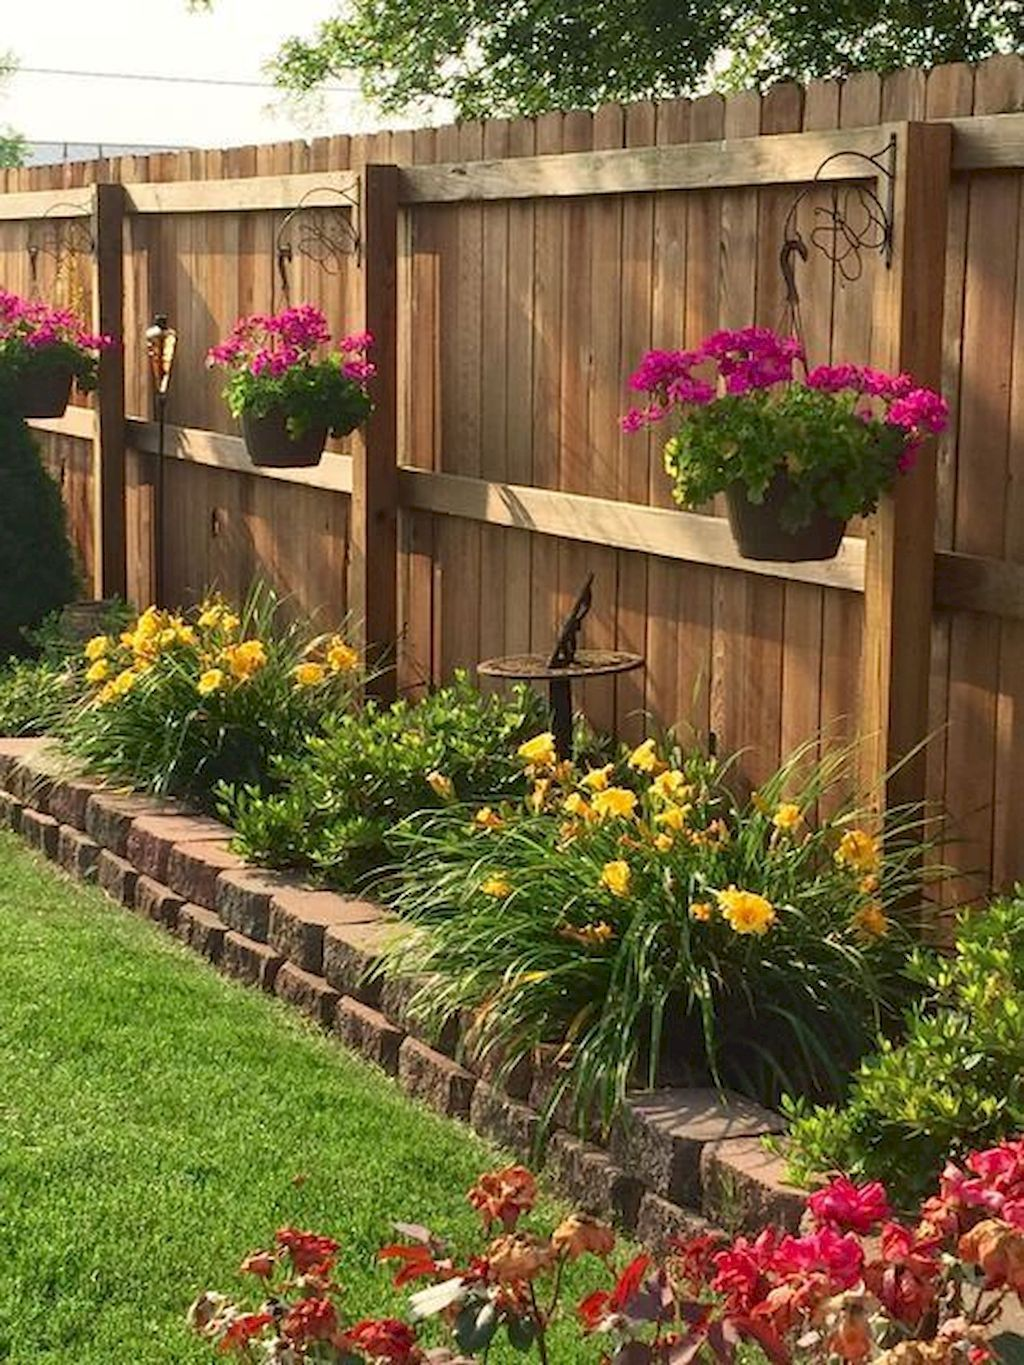 75 Low Maintenance Front Yard Landscaping Ideas | Backyard ... on Low Maintenance Back Garden Ideas id=65239